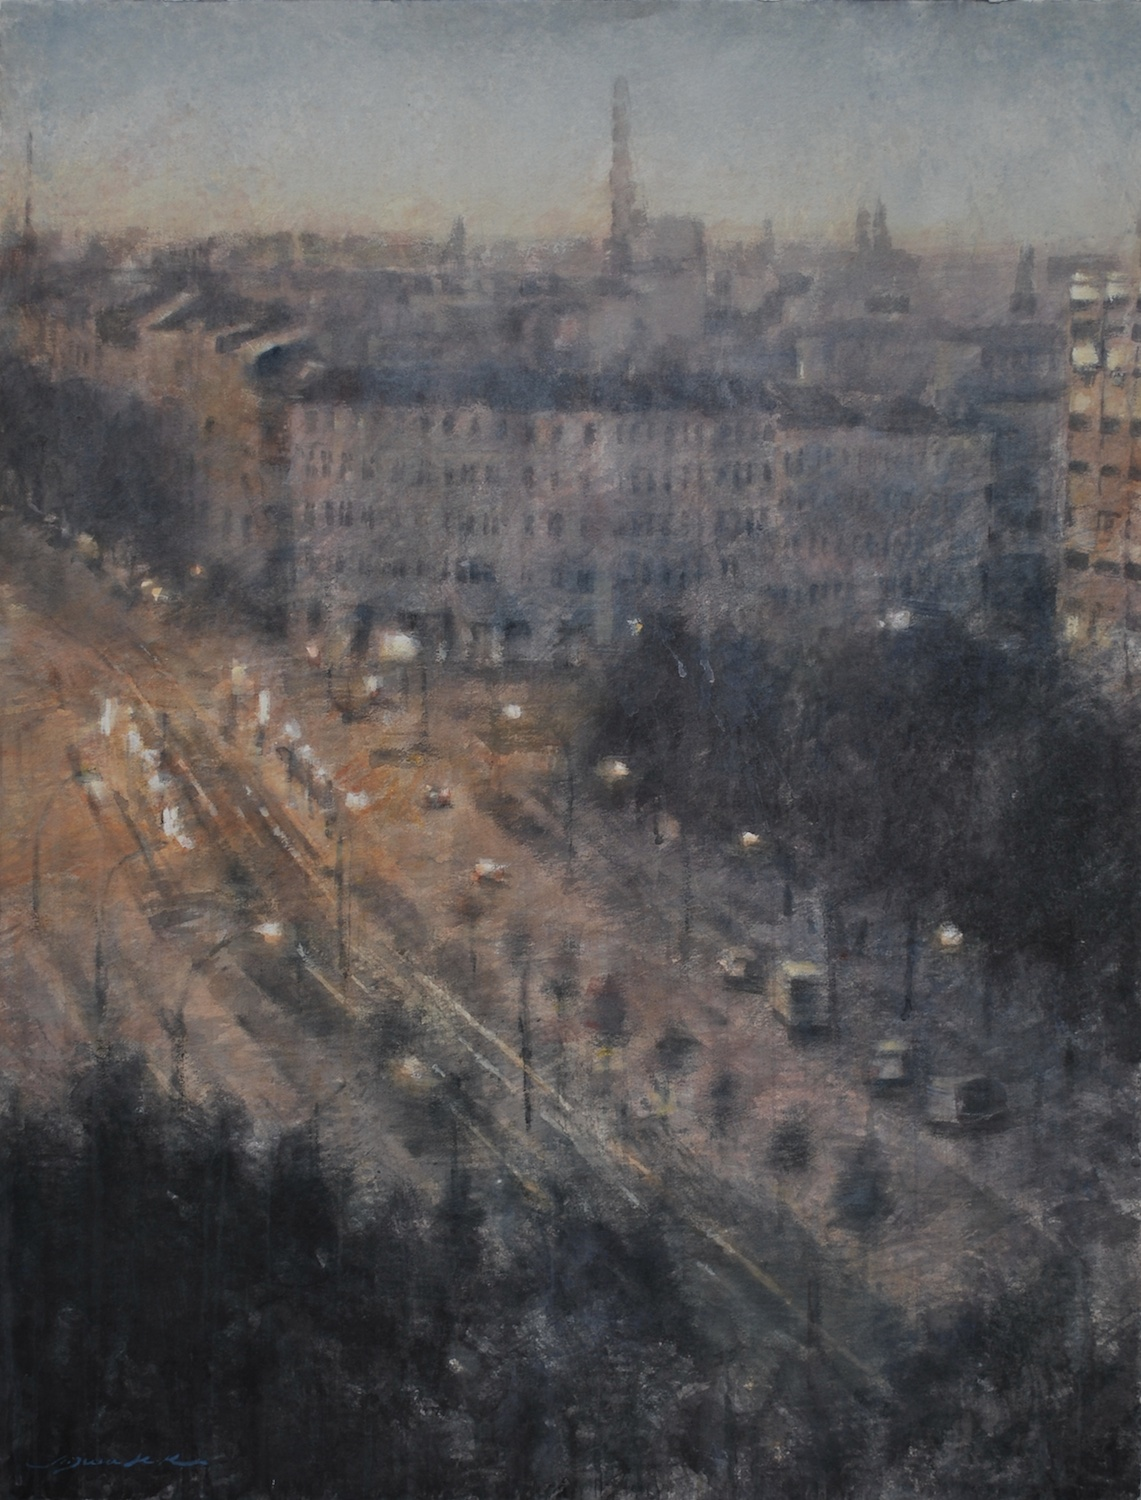 Berlin, 34x45 inches